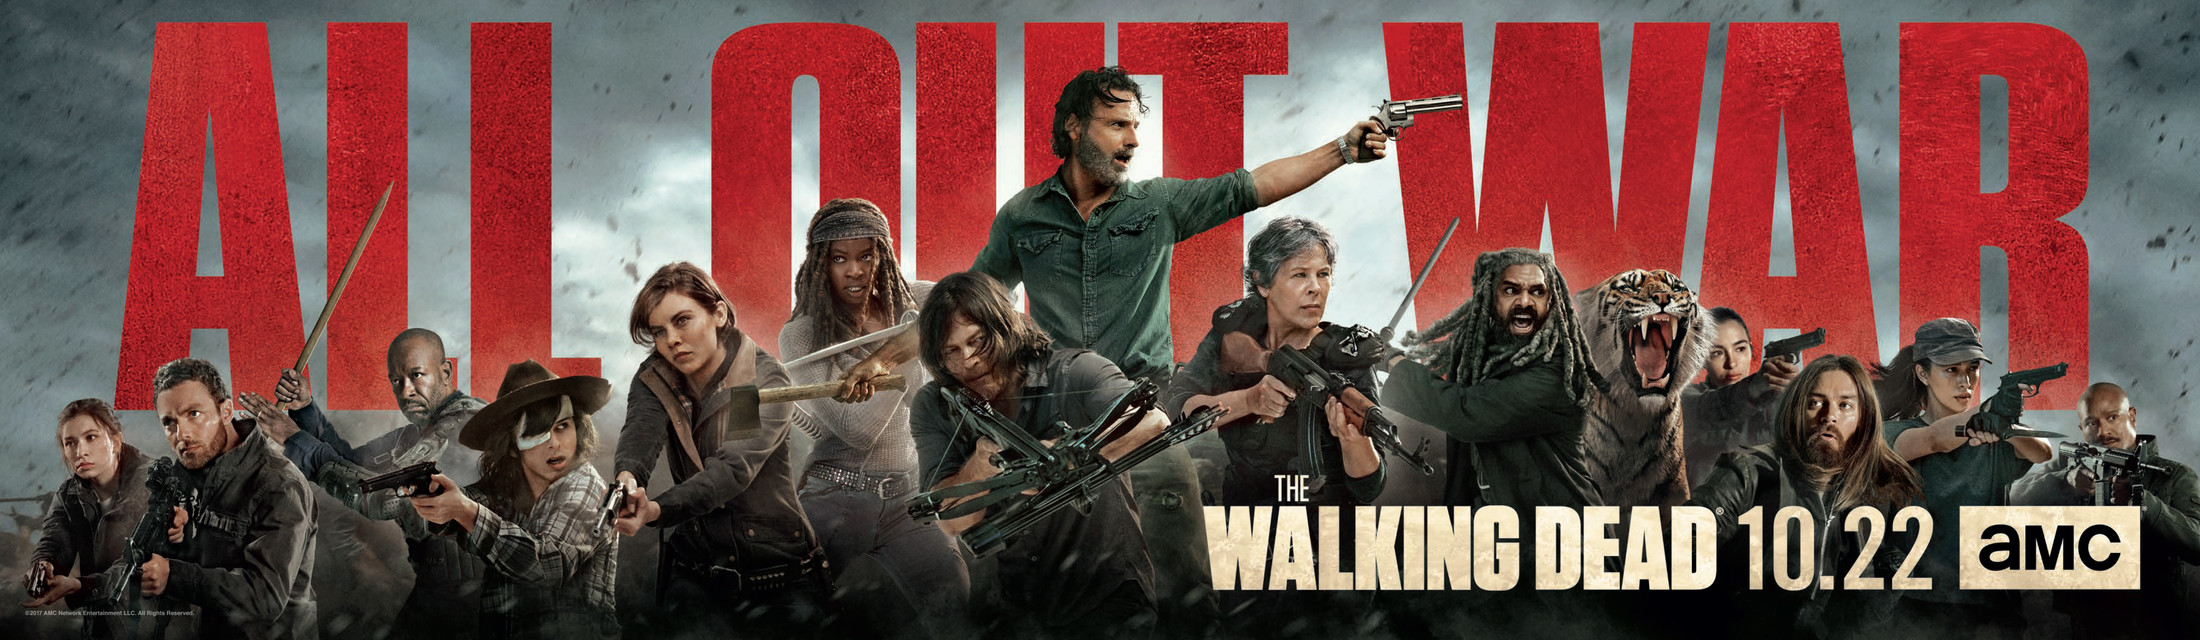 Amc Unveils The Walking Dead Season 8 Key Art